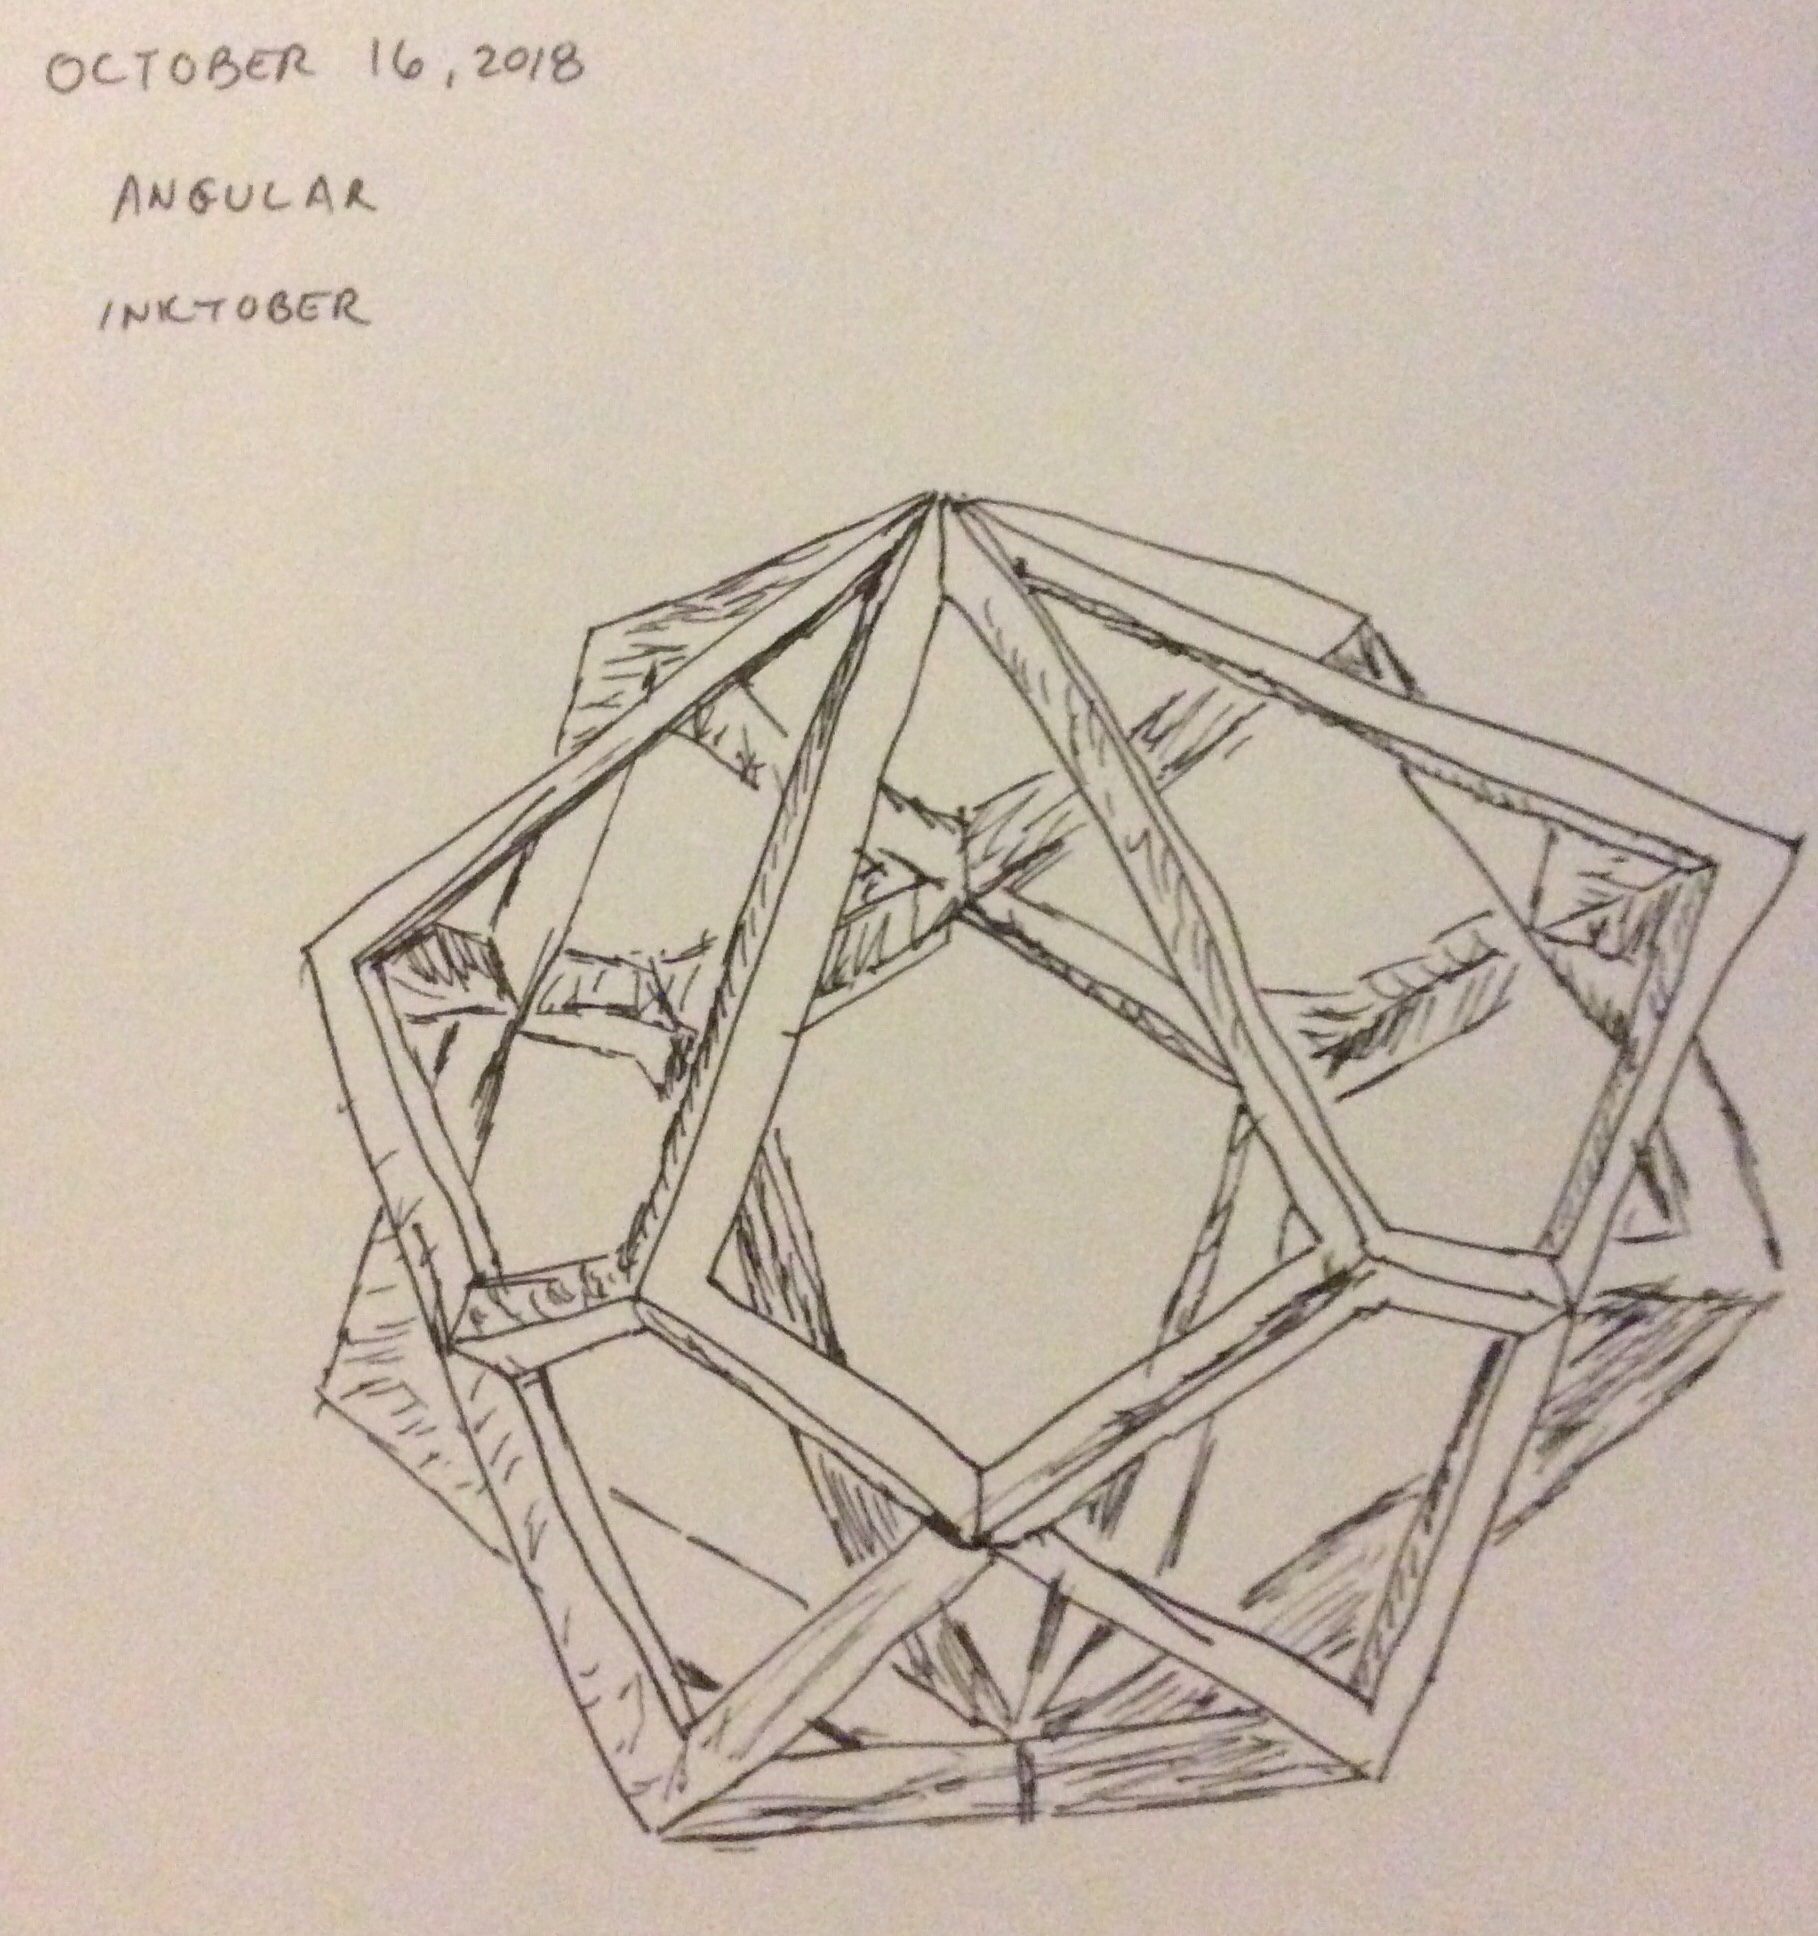 Drawing of a geometric figure